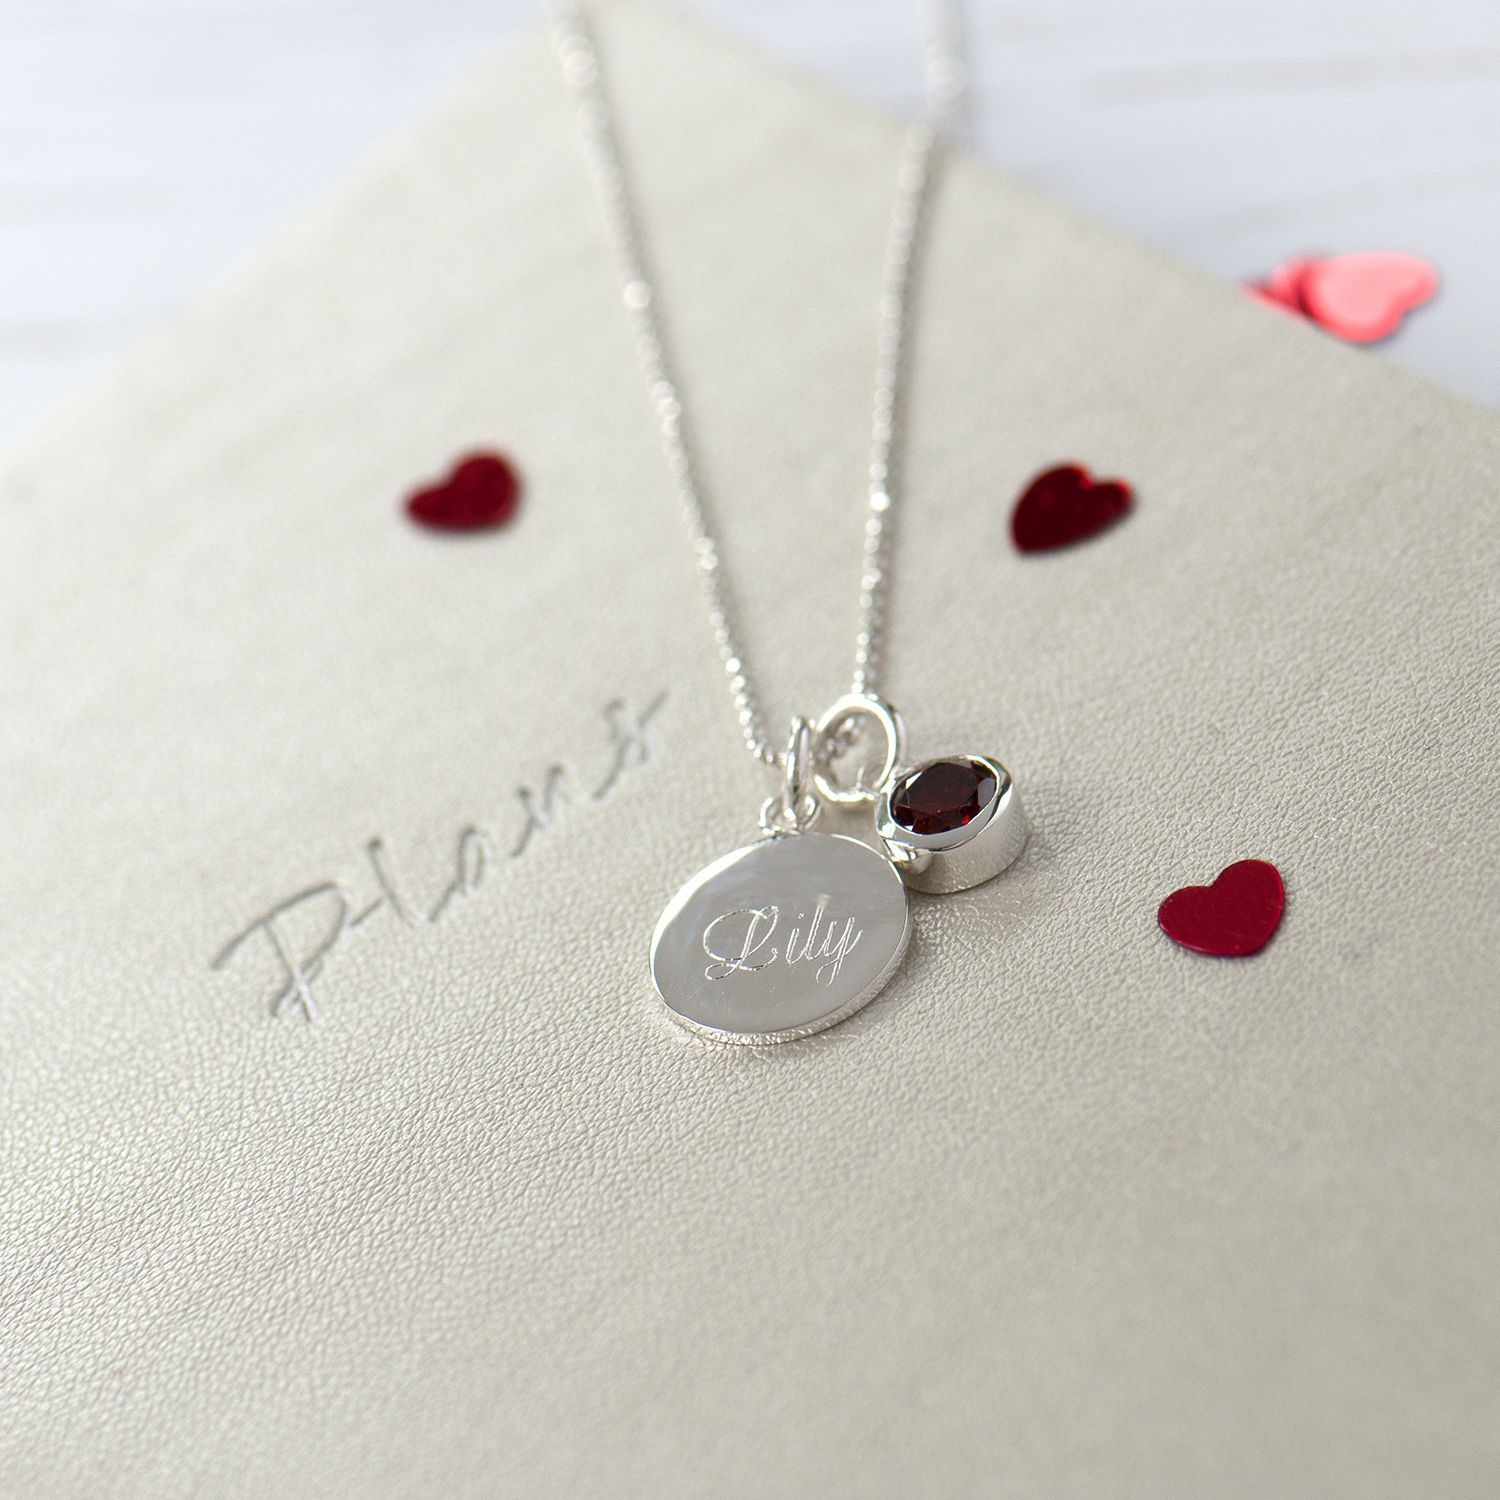 Personalised Sterling Silver Necklace Name Necklace Date Necklace September Birthday Necklace Custom Birthstone Jewelry Engraved Pendant Sterling Silver Necklaces Silver Birthstone Jewelry